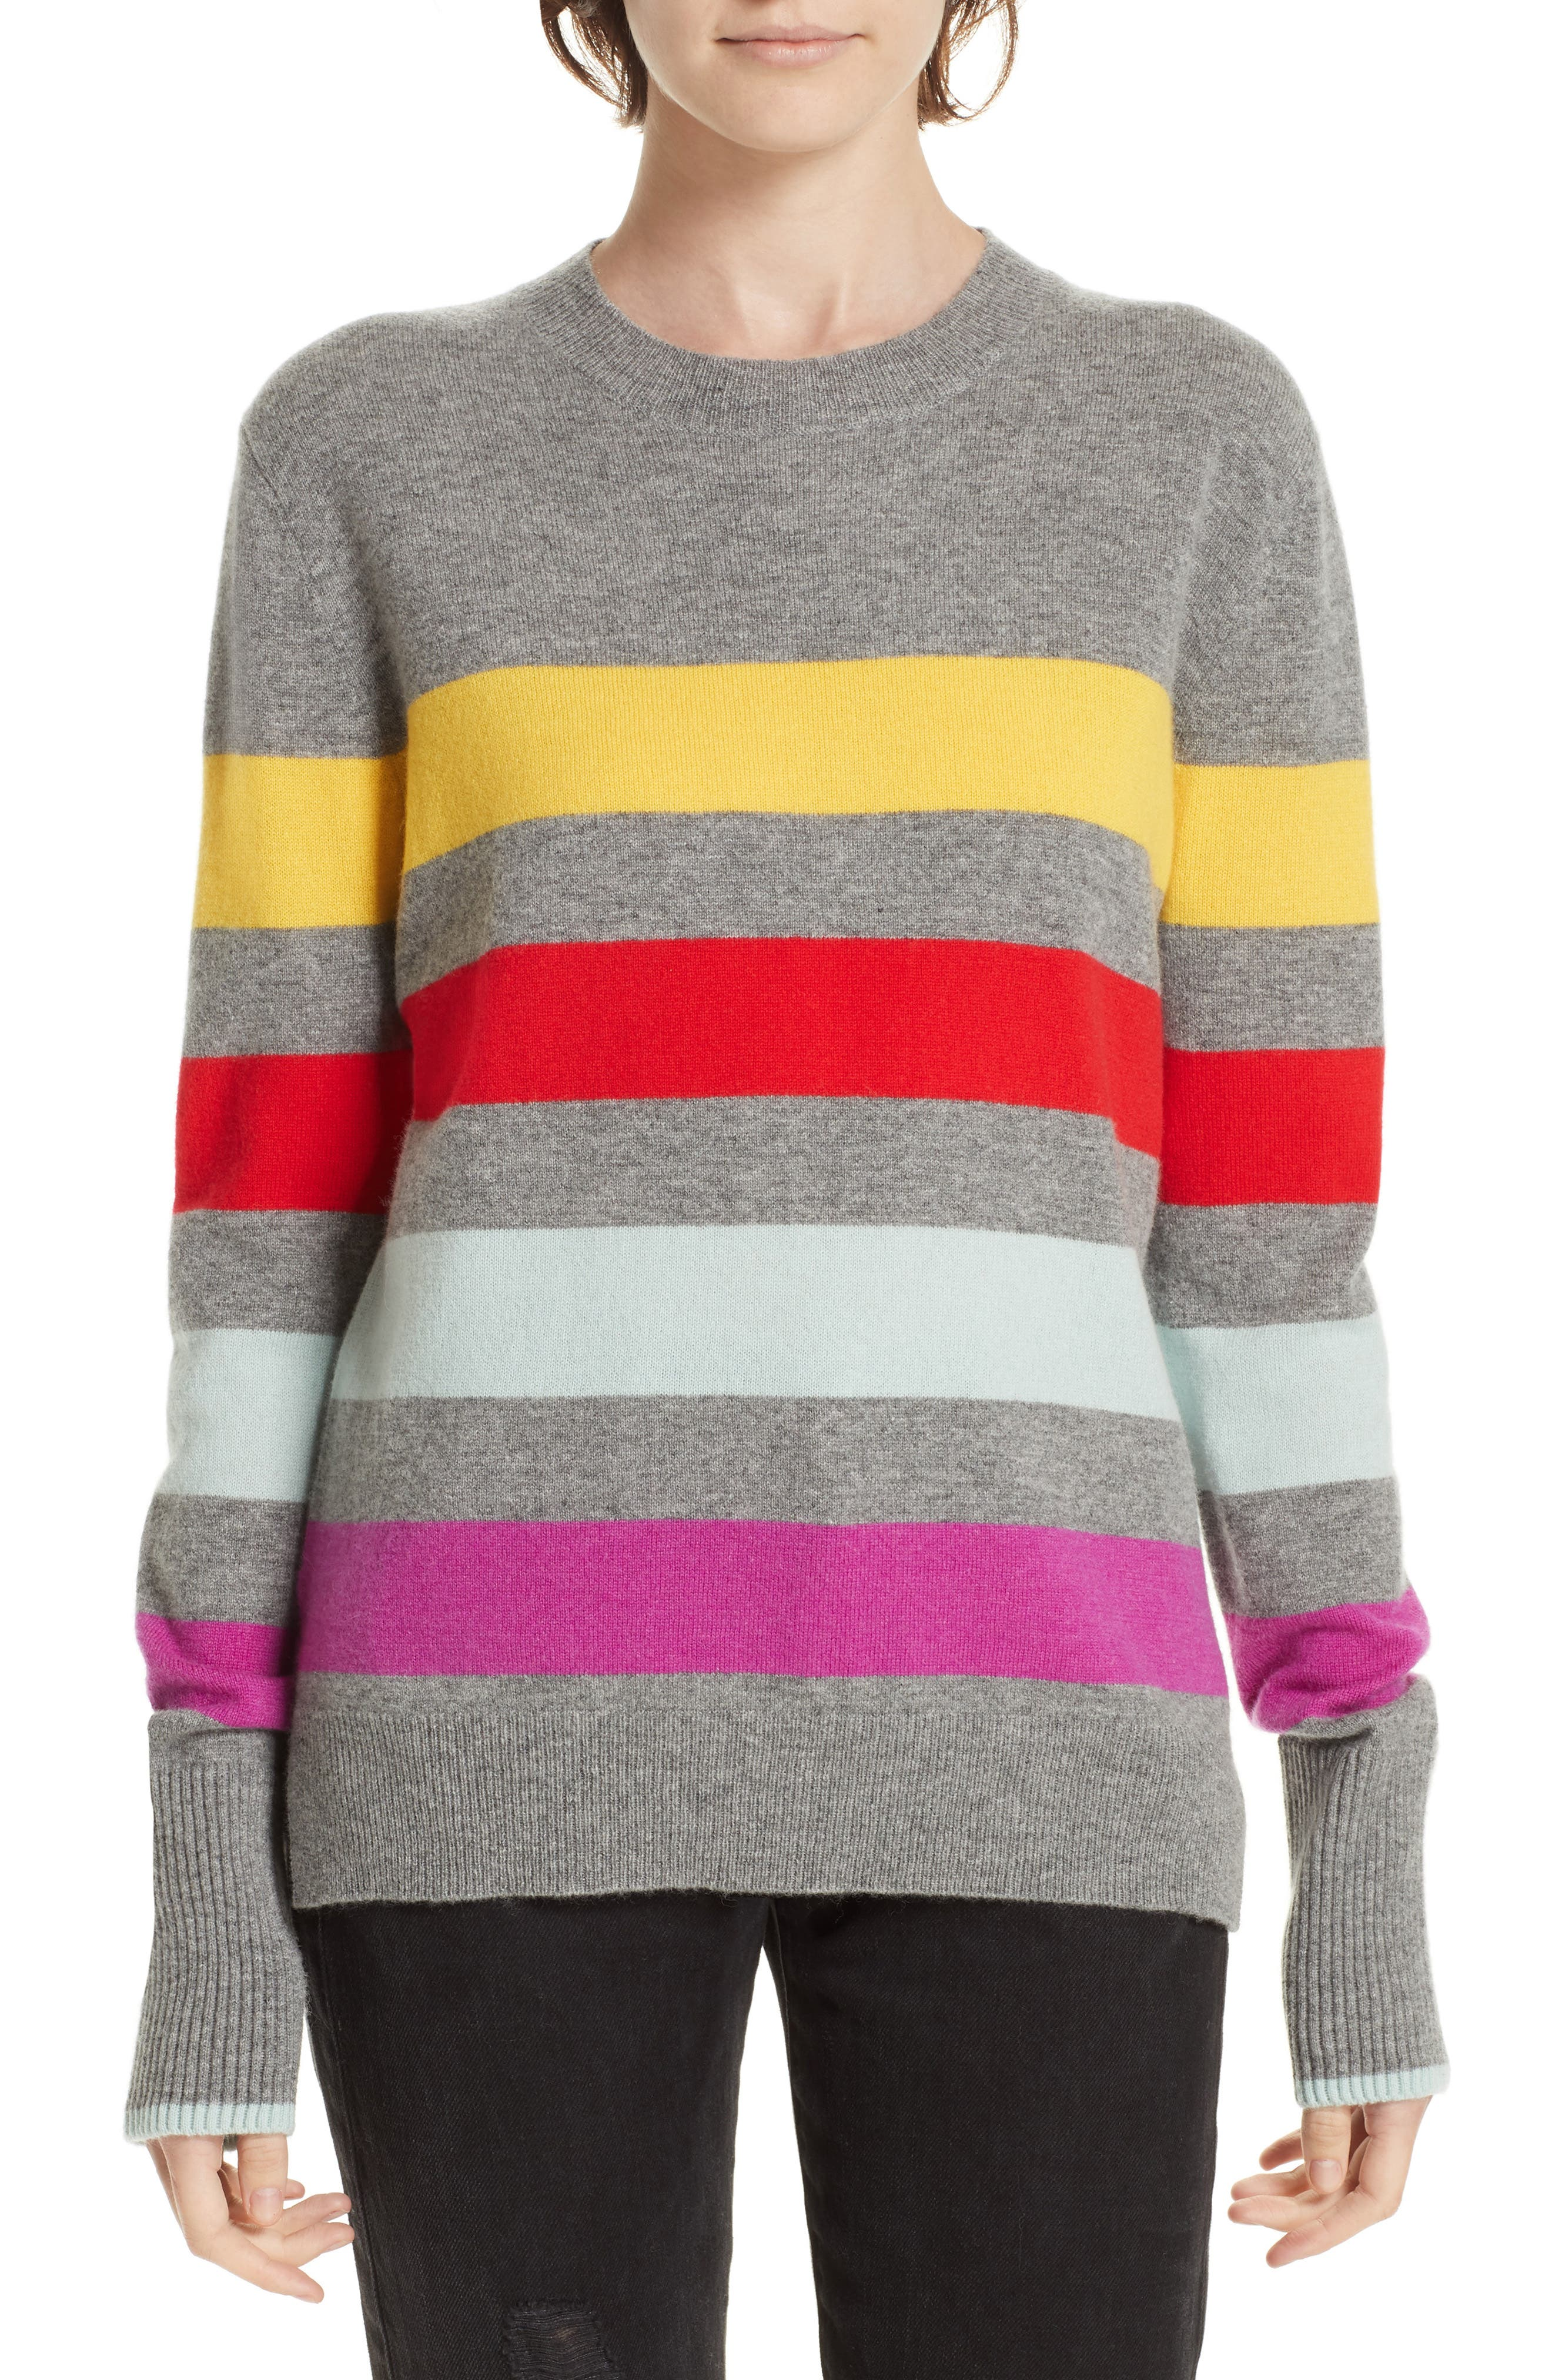 Candy Stripe Sweater,                             Main thumbnail 1, color,                             GREY MARLE/ RAINBOW